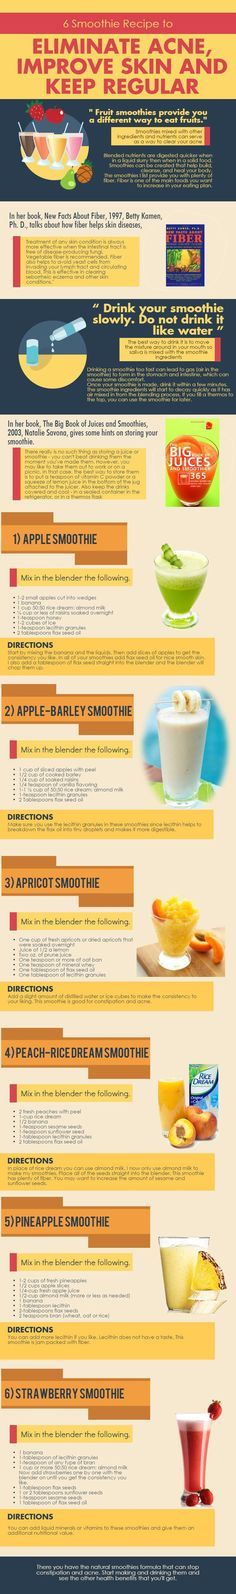 Fruit smoothies provide you a different way to eat fruits. Smoothies mixed with other ingredients and nutrients can serve as a way to clear your acne and provide nutrients to clear constipation. So, here are the six smoothie recipes you can blend...